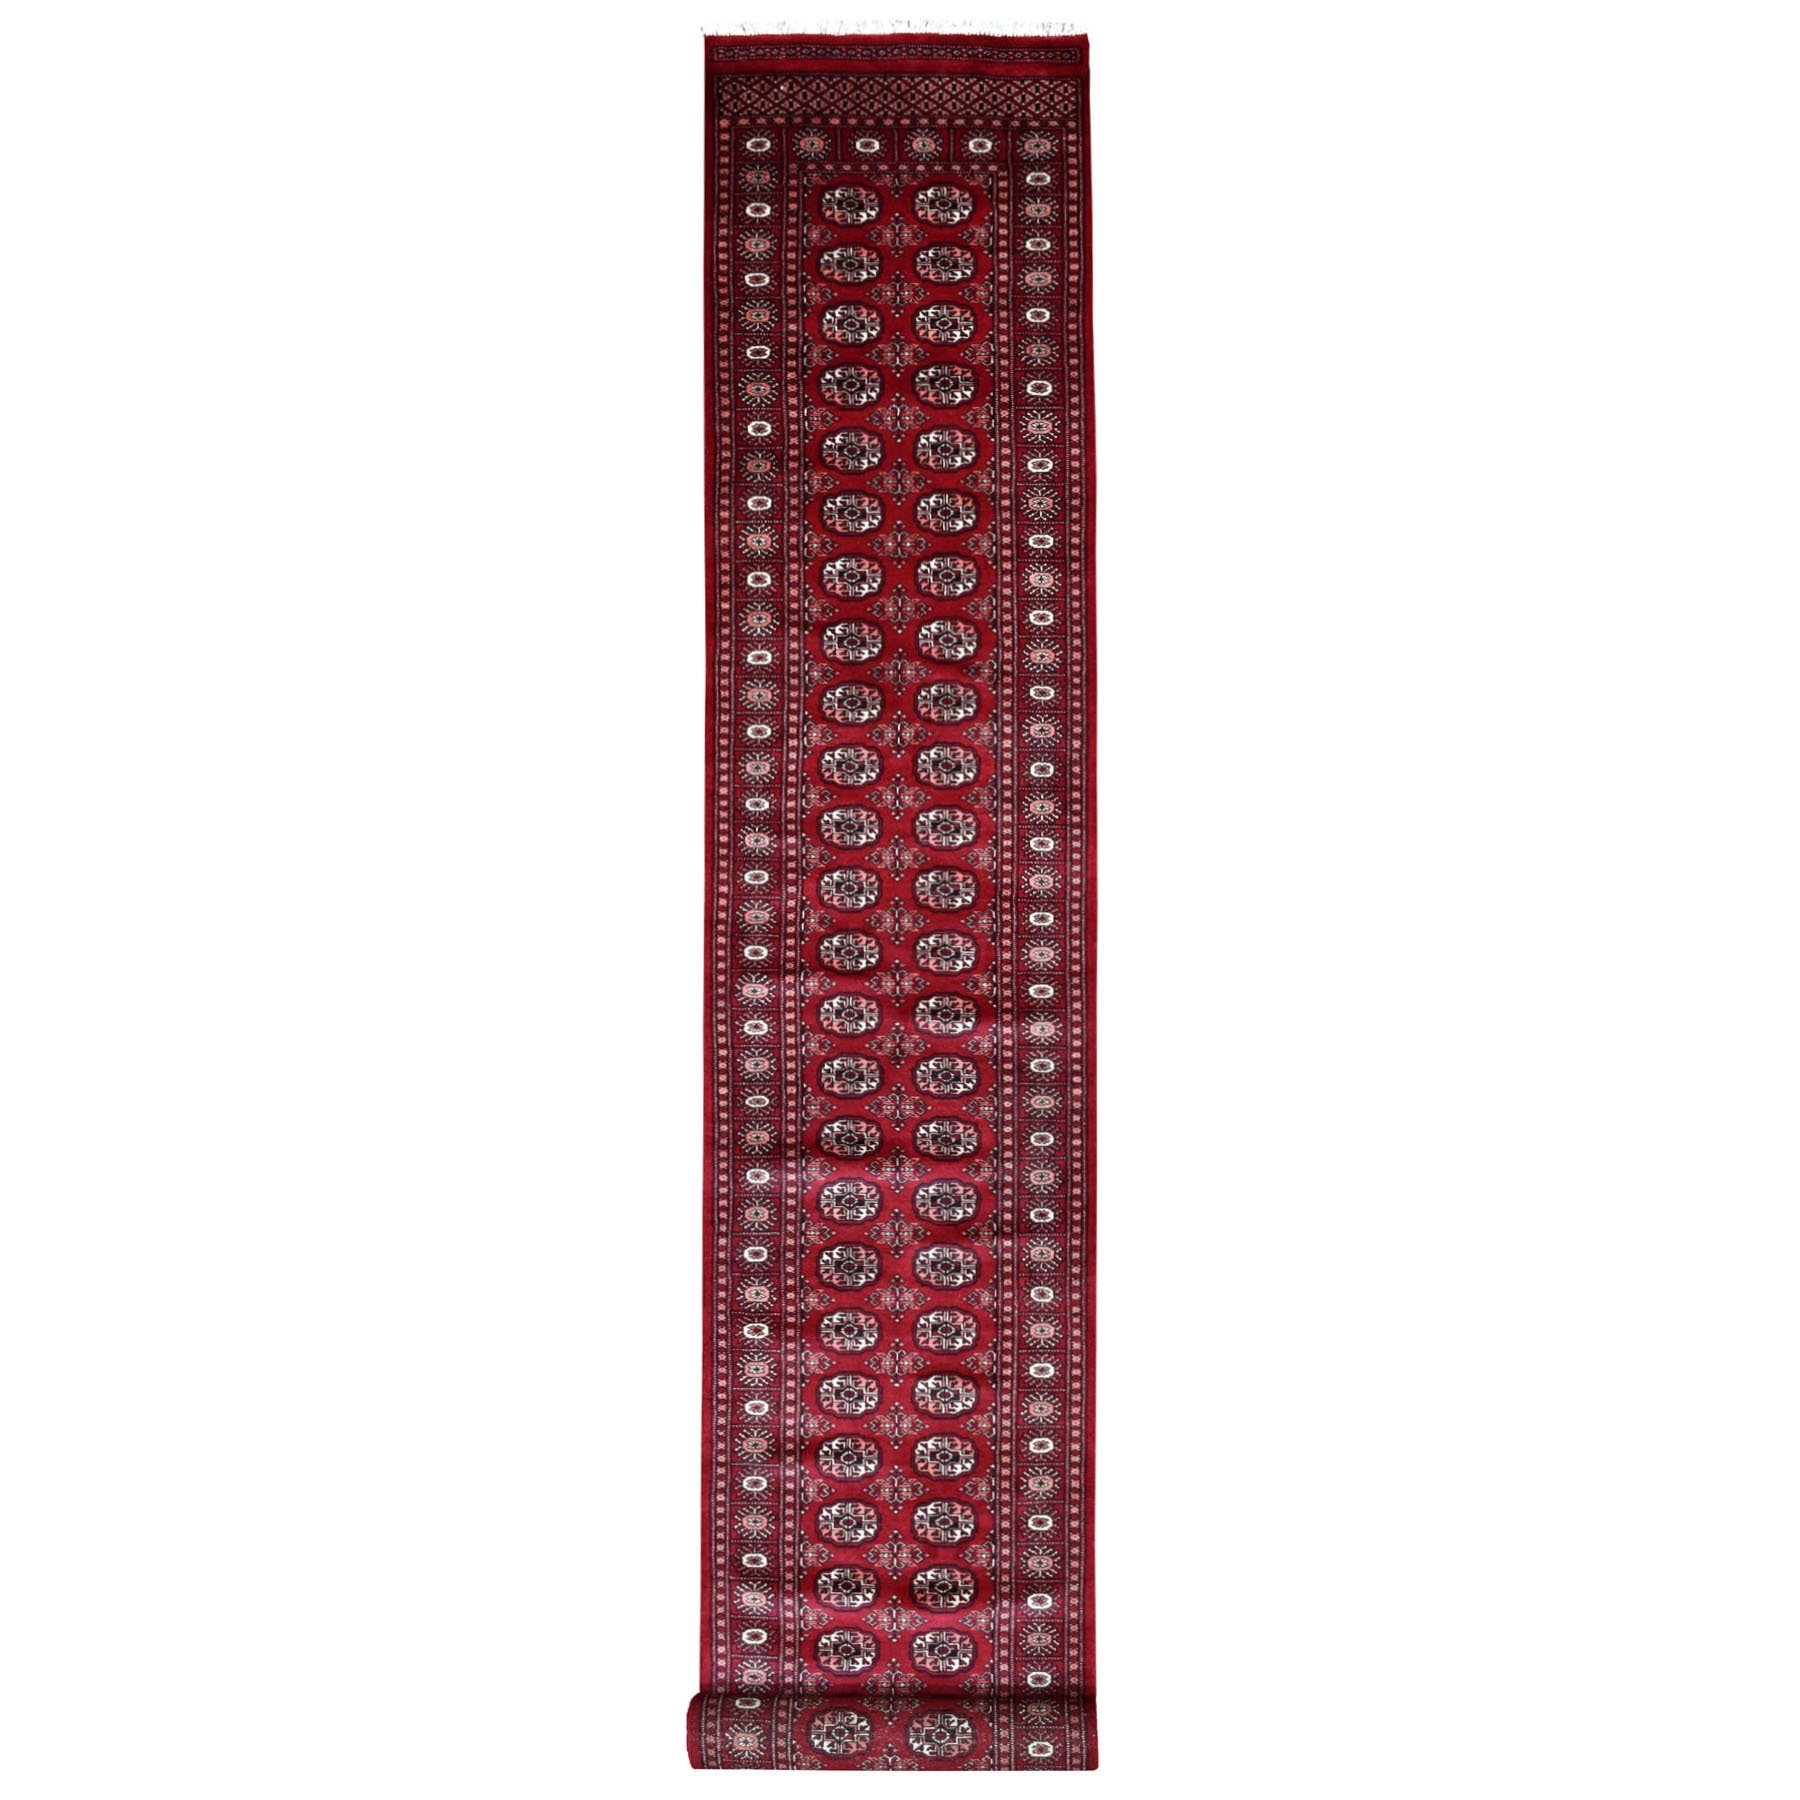 Nomadic And Village Collection Hand Knotted Red Rug No: 1110080